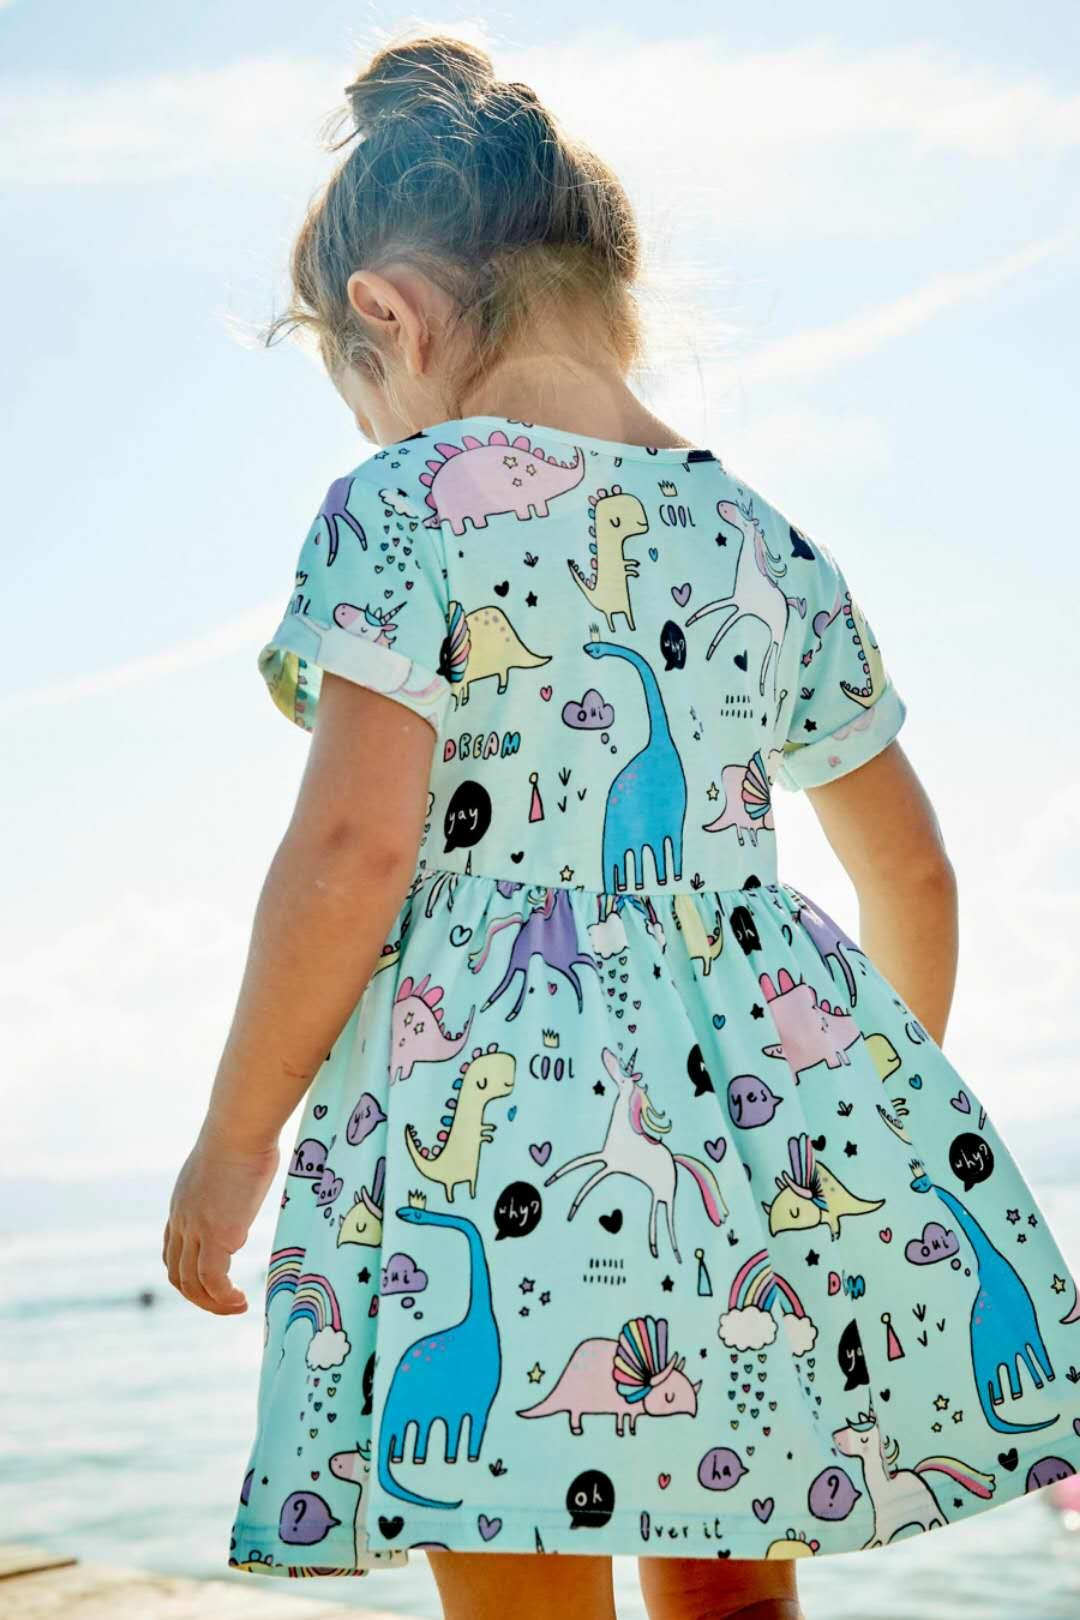 Little Girls Dinosaur Tunic Short Sleeve Summer Casual Dress size 2t(1t-2t) by Bumeex (Image #4)